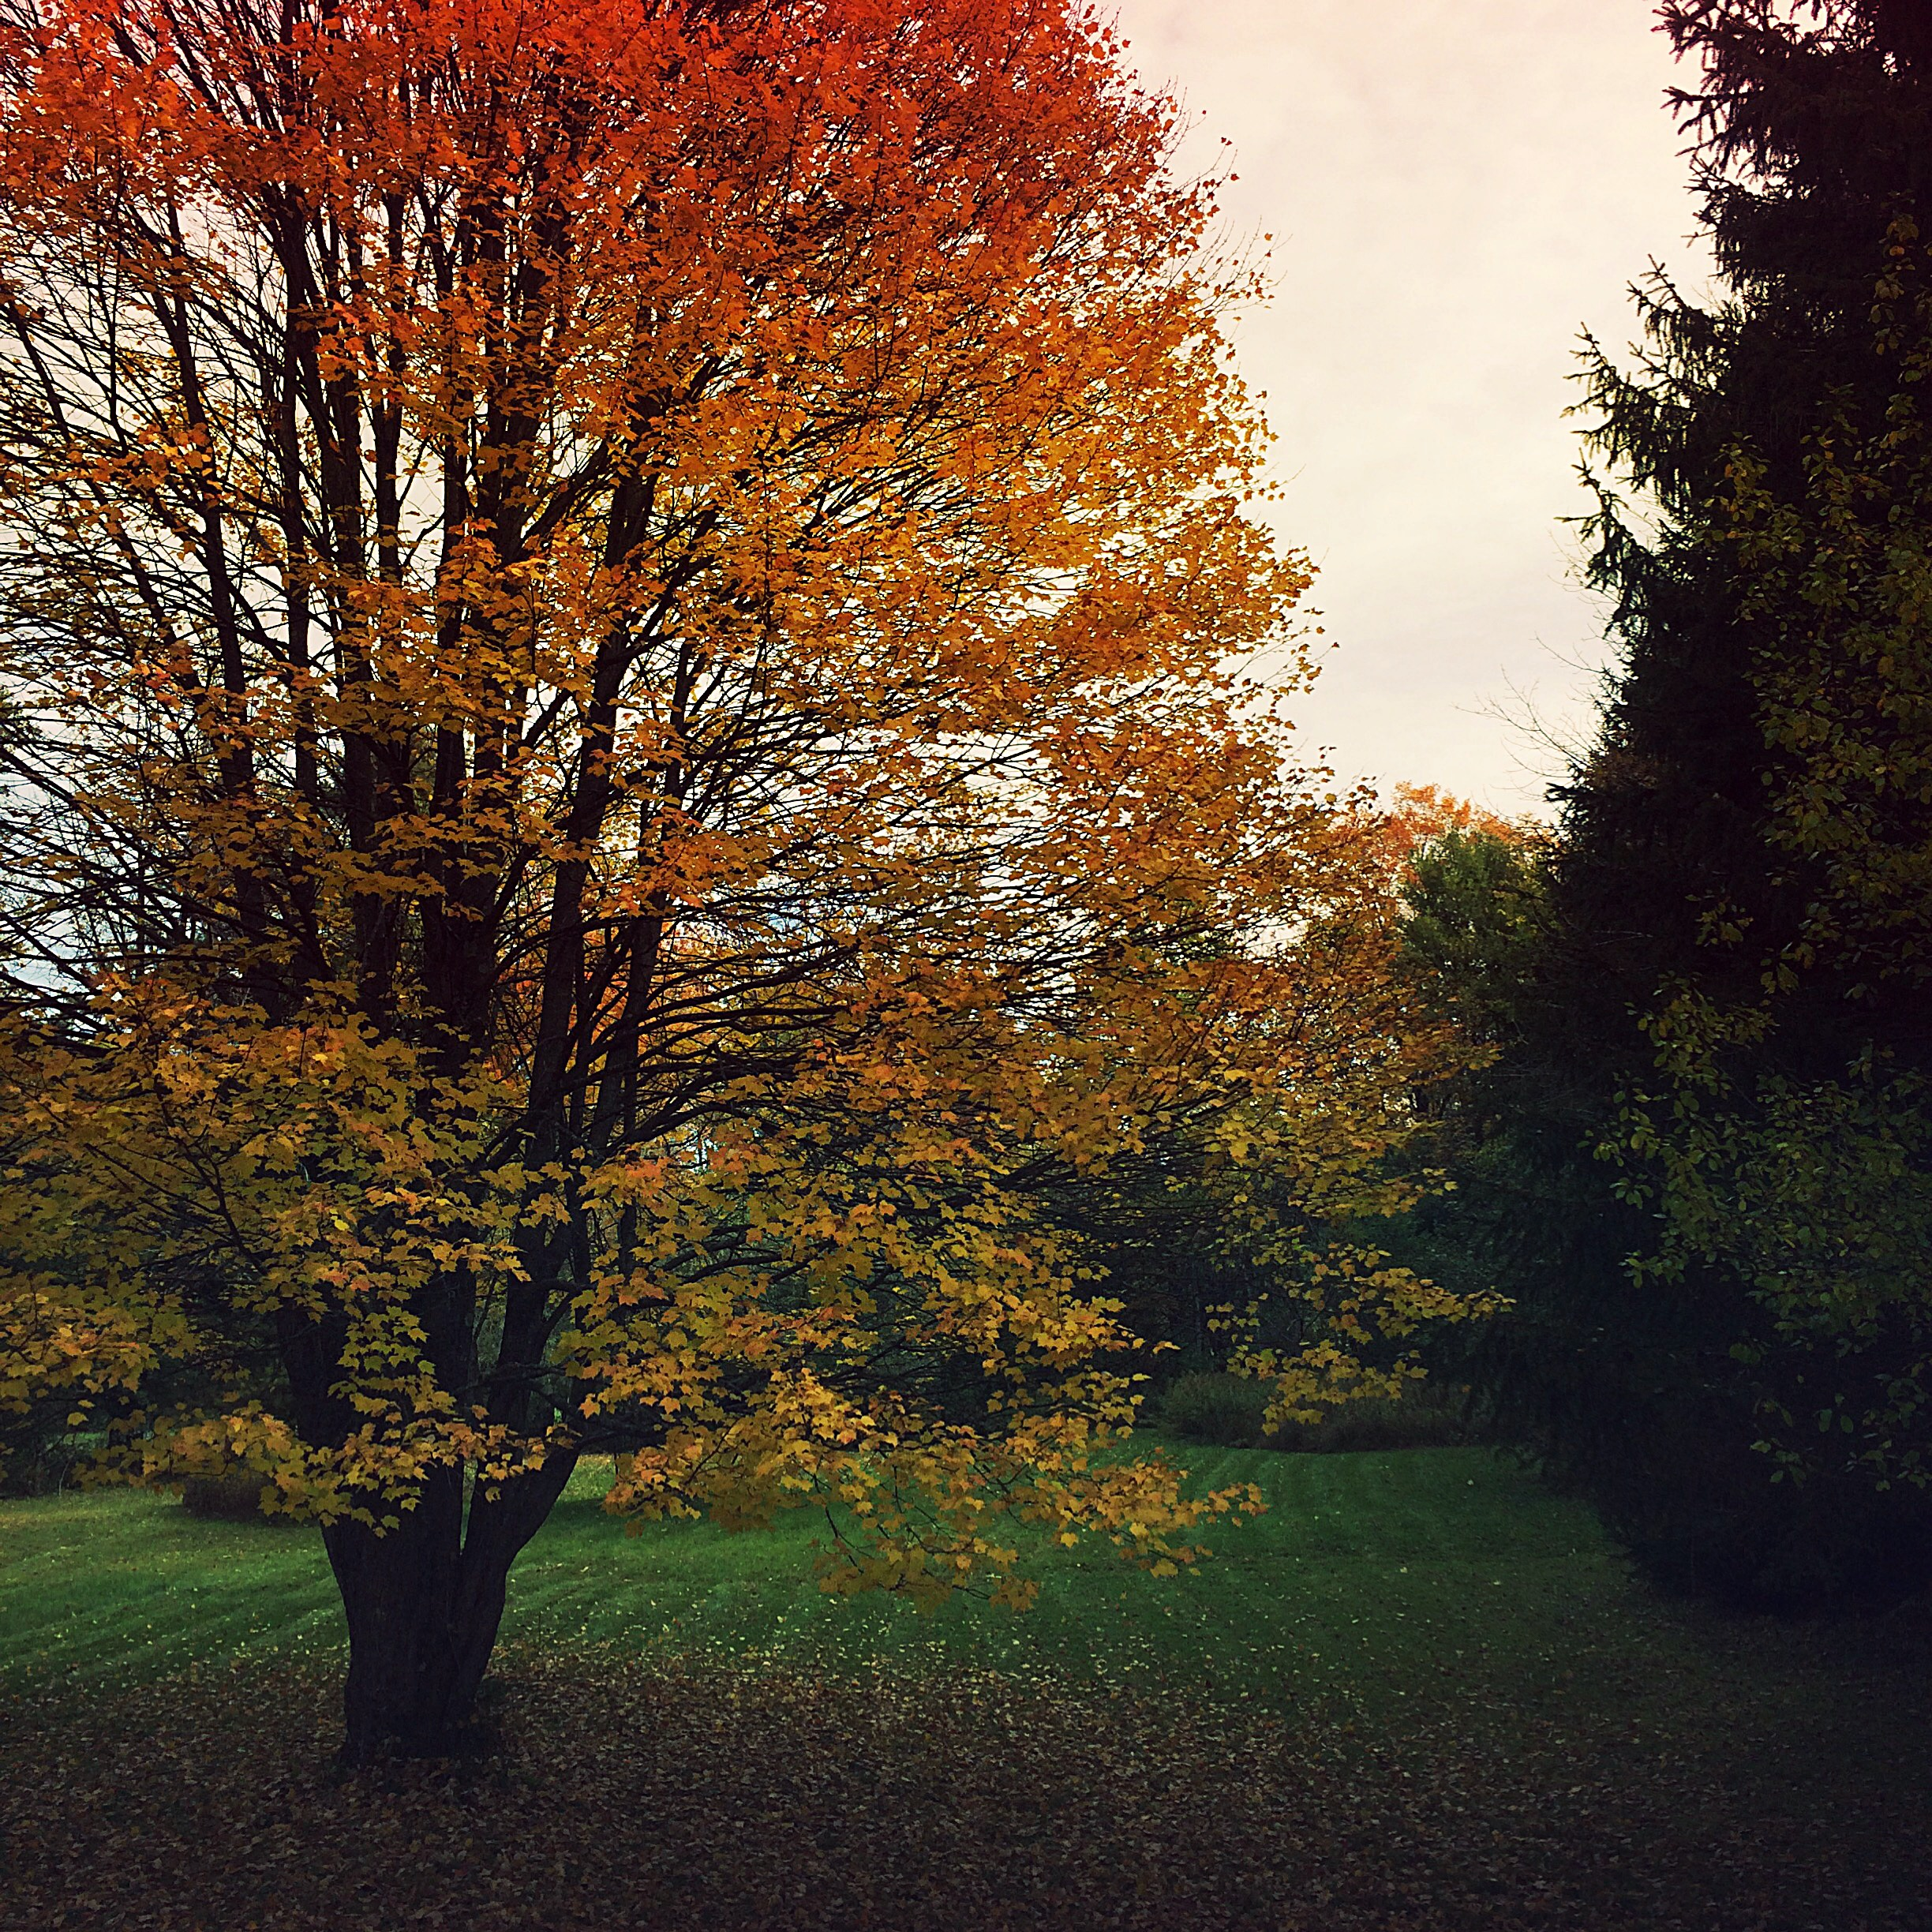 ©Tree With Fallen Leaves by Dena T Bray